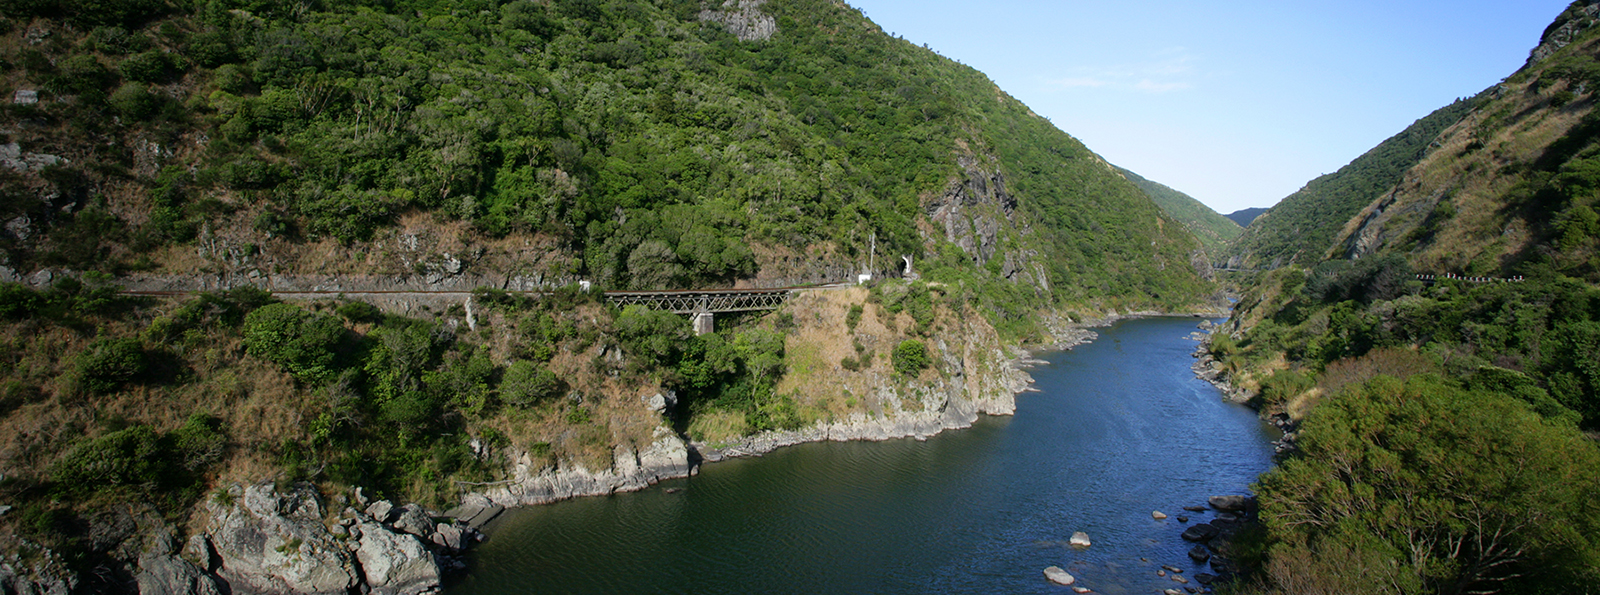 CEDA Receives PGF Funding to Investigate Tourism Potential for Te Āpiti – Manawatū Gorge